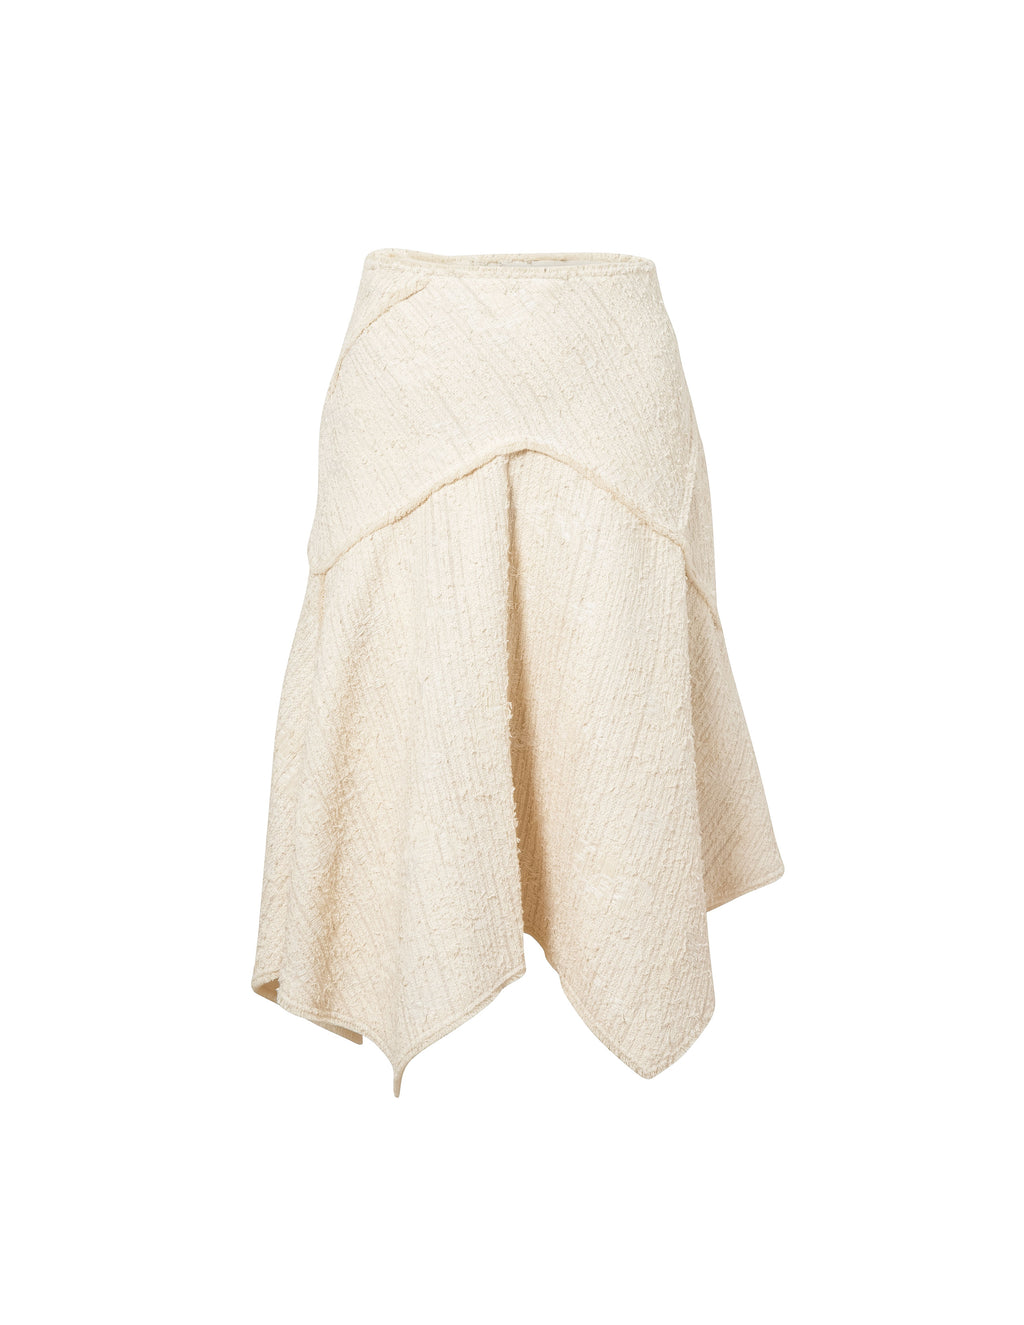 Skirt Boucle Tweed